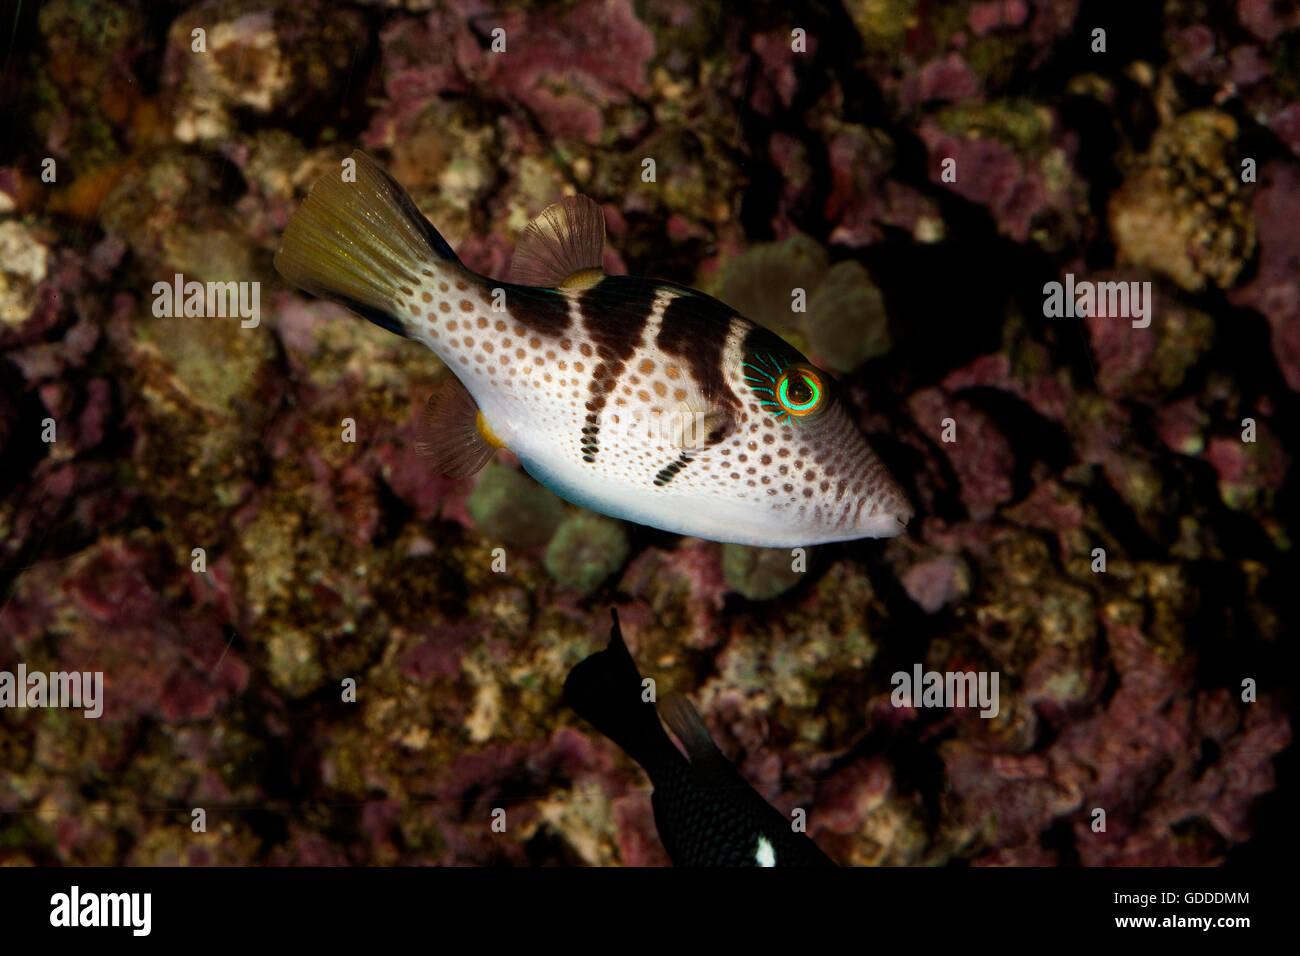 Black Saddled Puffer or Valentini's Puffer,  canthigaster valentini, Adult Stock Photo